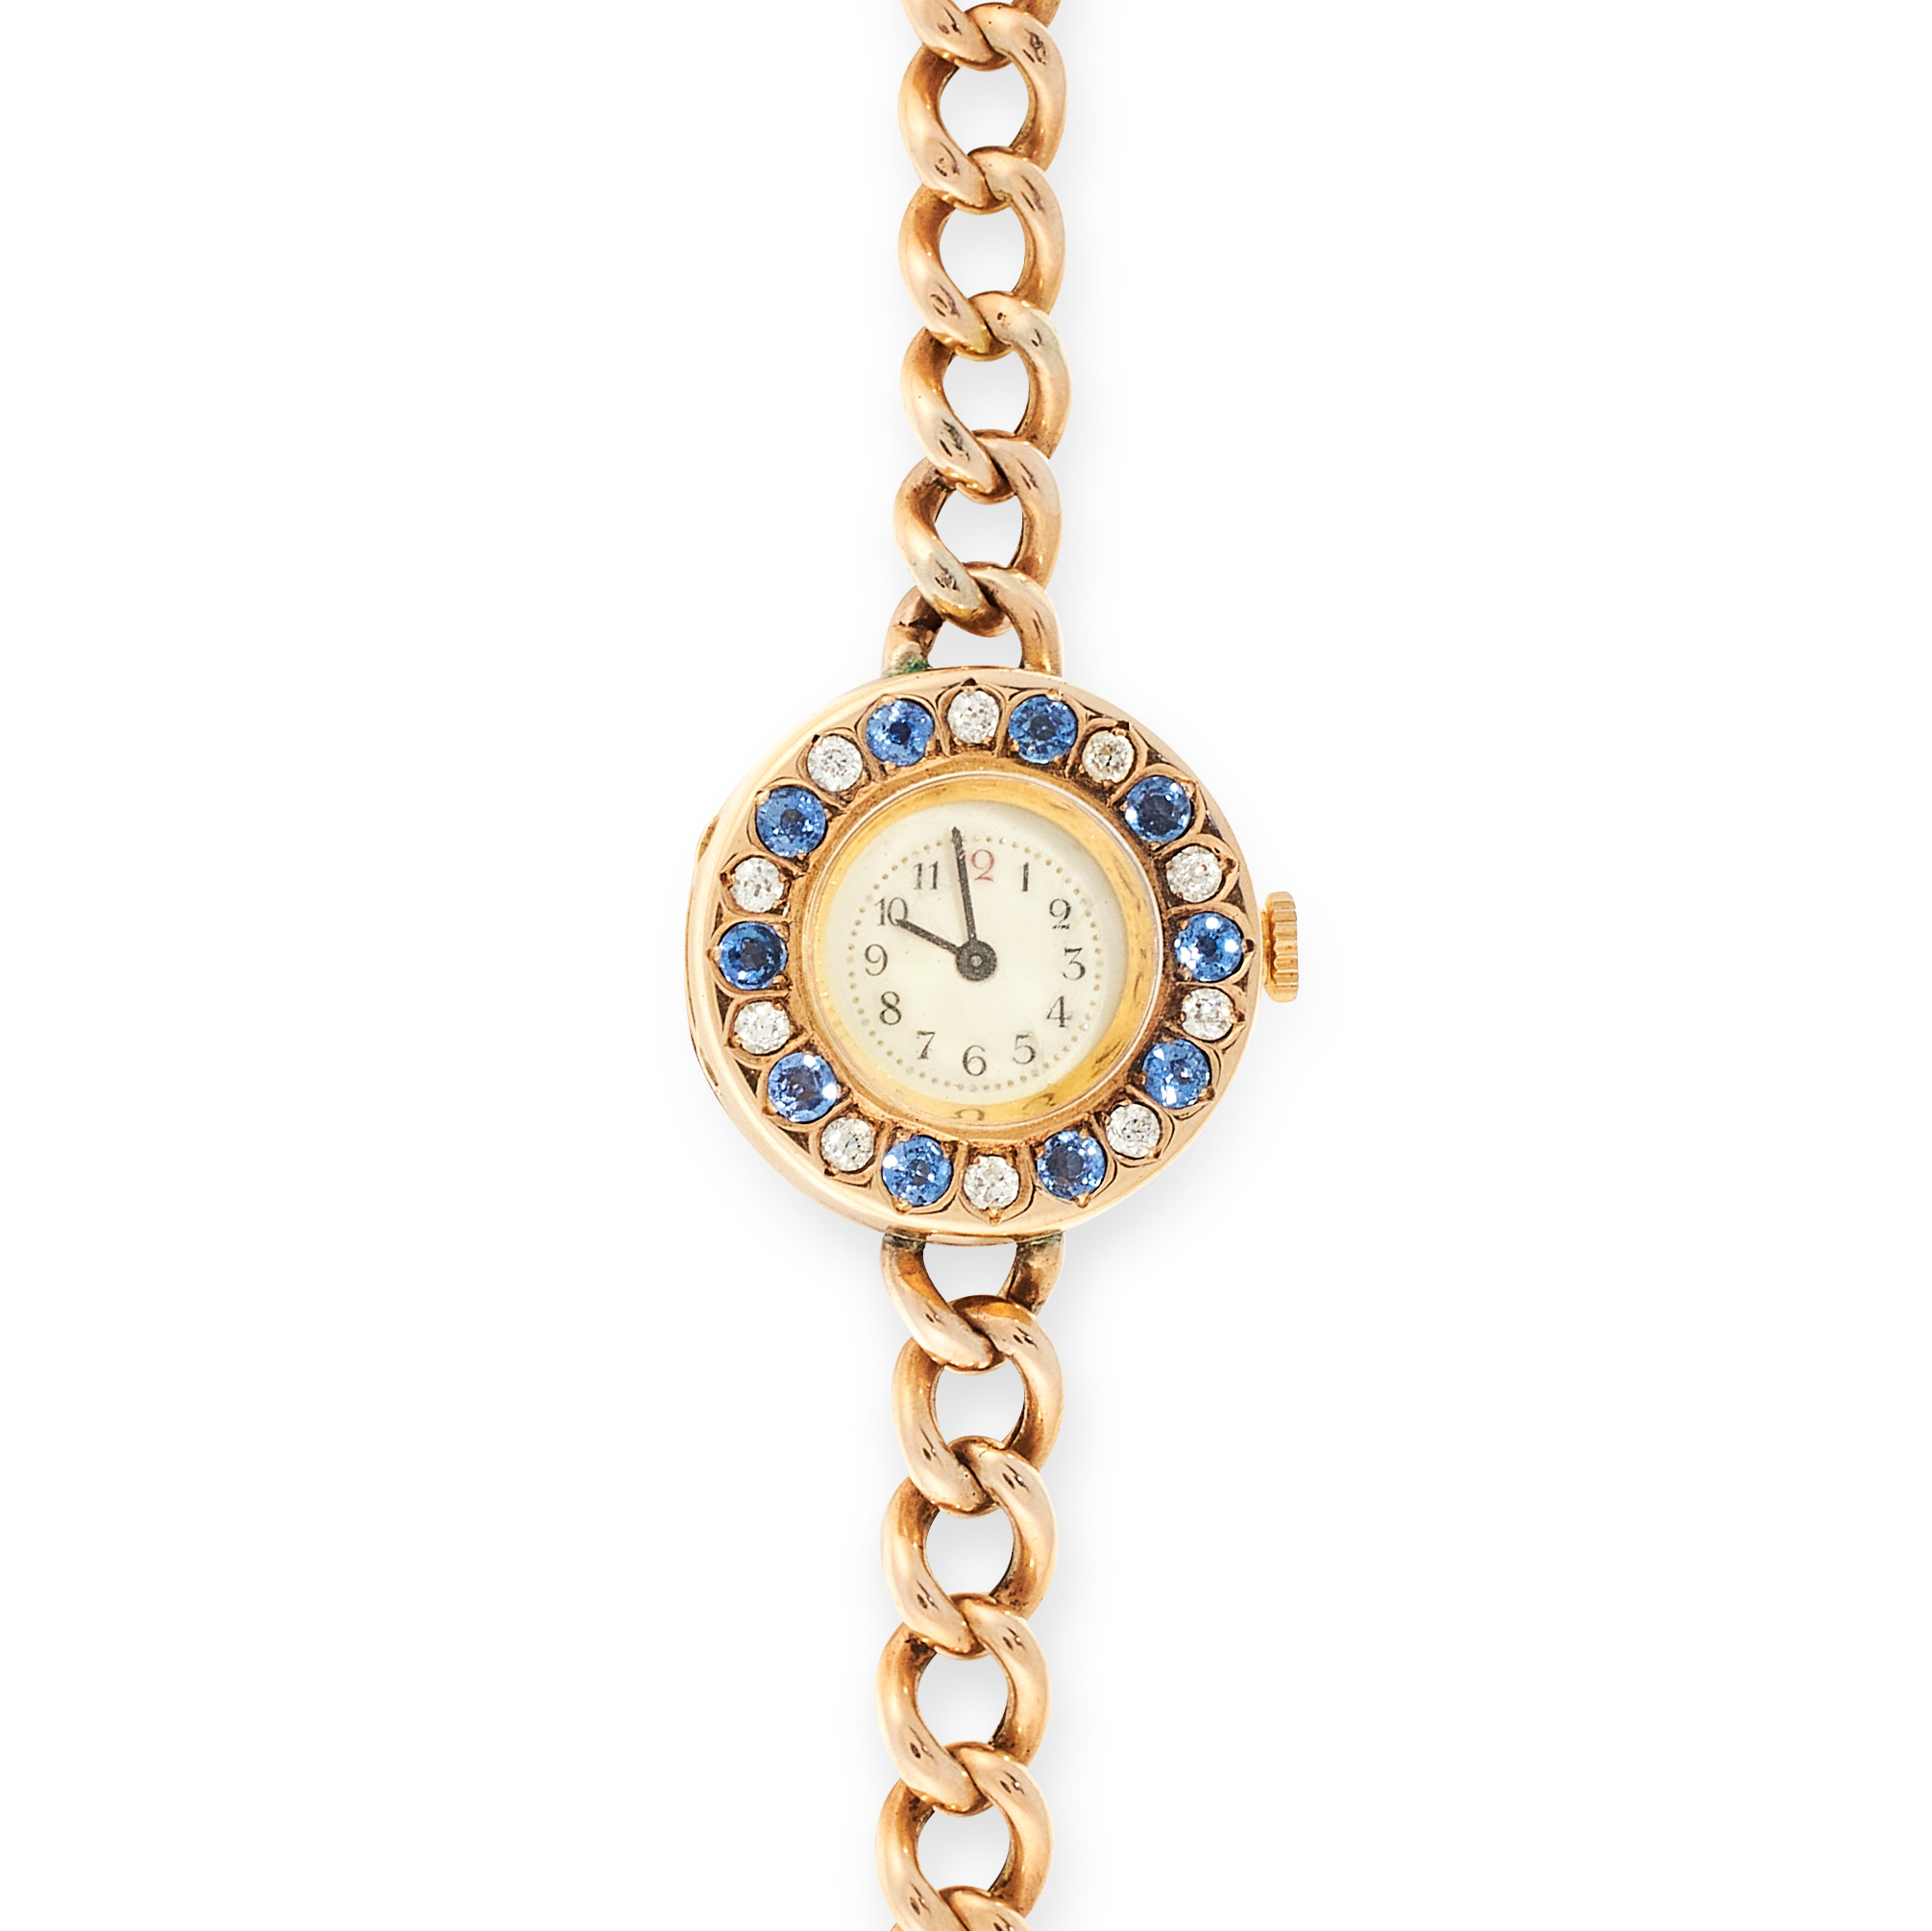 A SAPPHIRE AND DIAMOND COCKTAIL WATCH in 18ct and 15ct yellow gold, the circular watch face jewelled